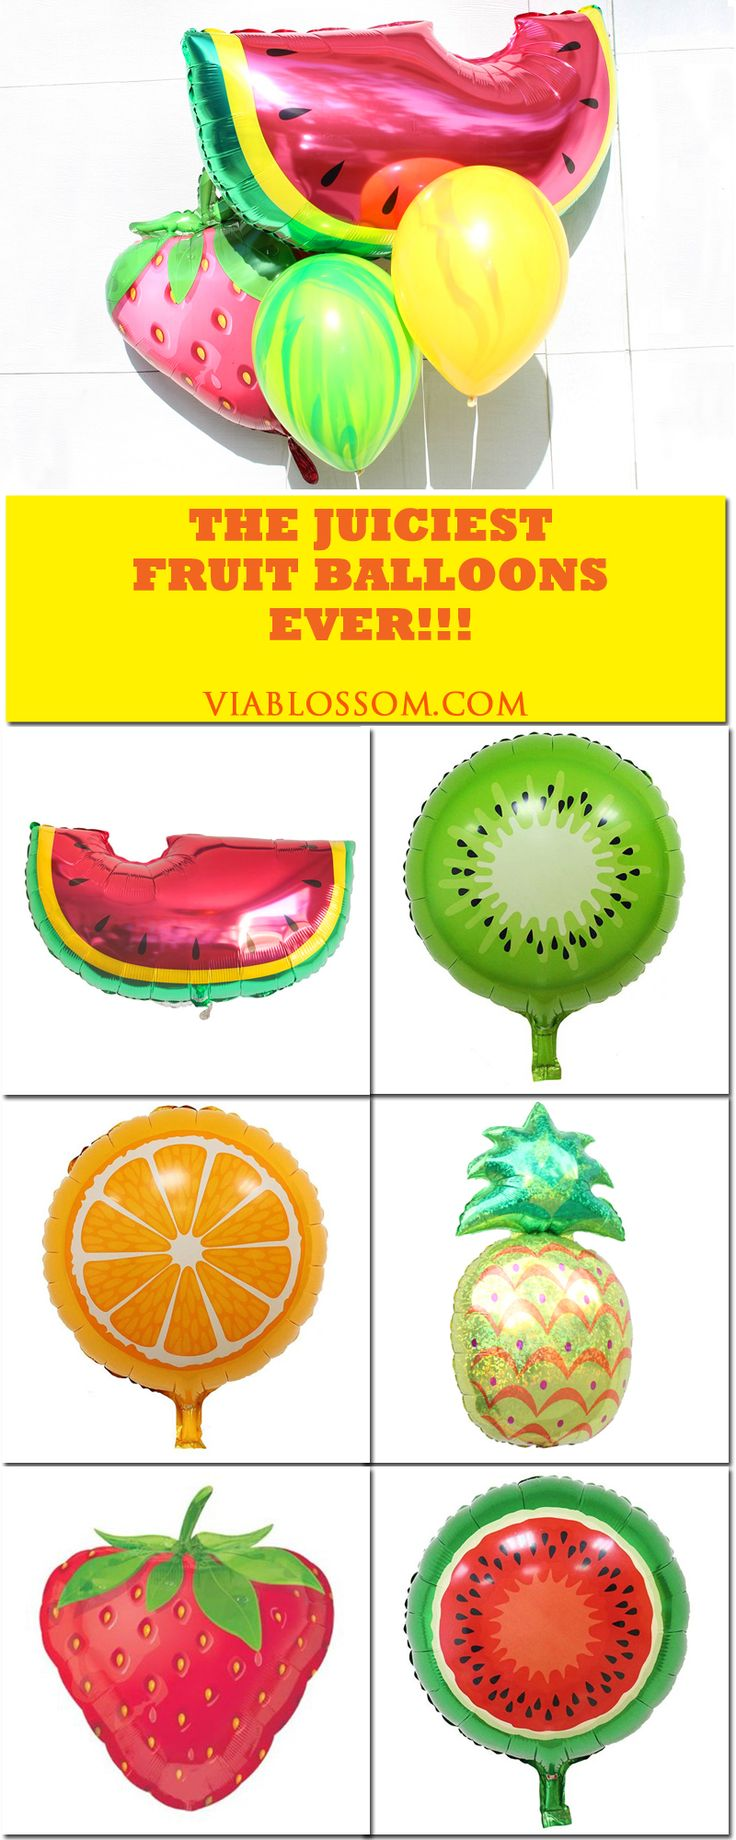 Fruit Balloons for all your summer parties!! Pineapple balloons, strawberry balloons, watermelon balloons and more!!